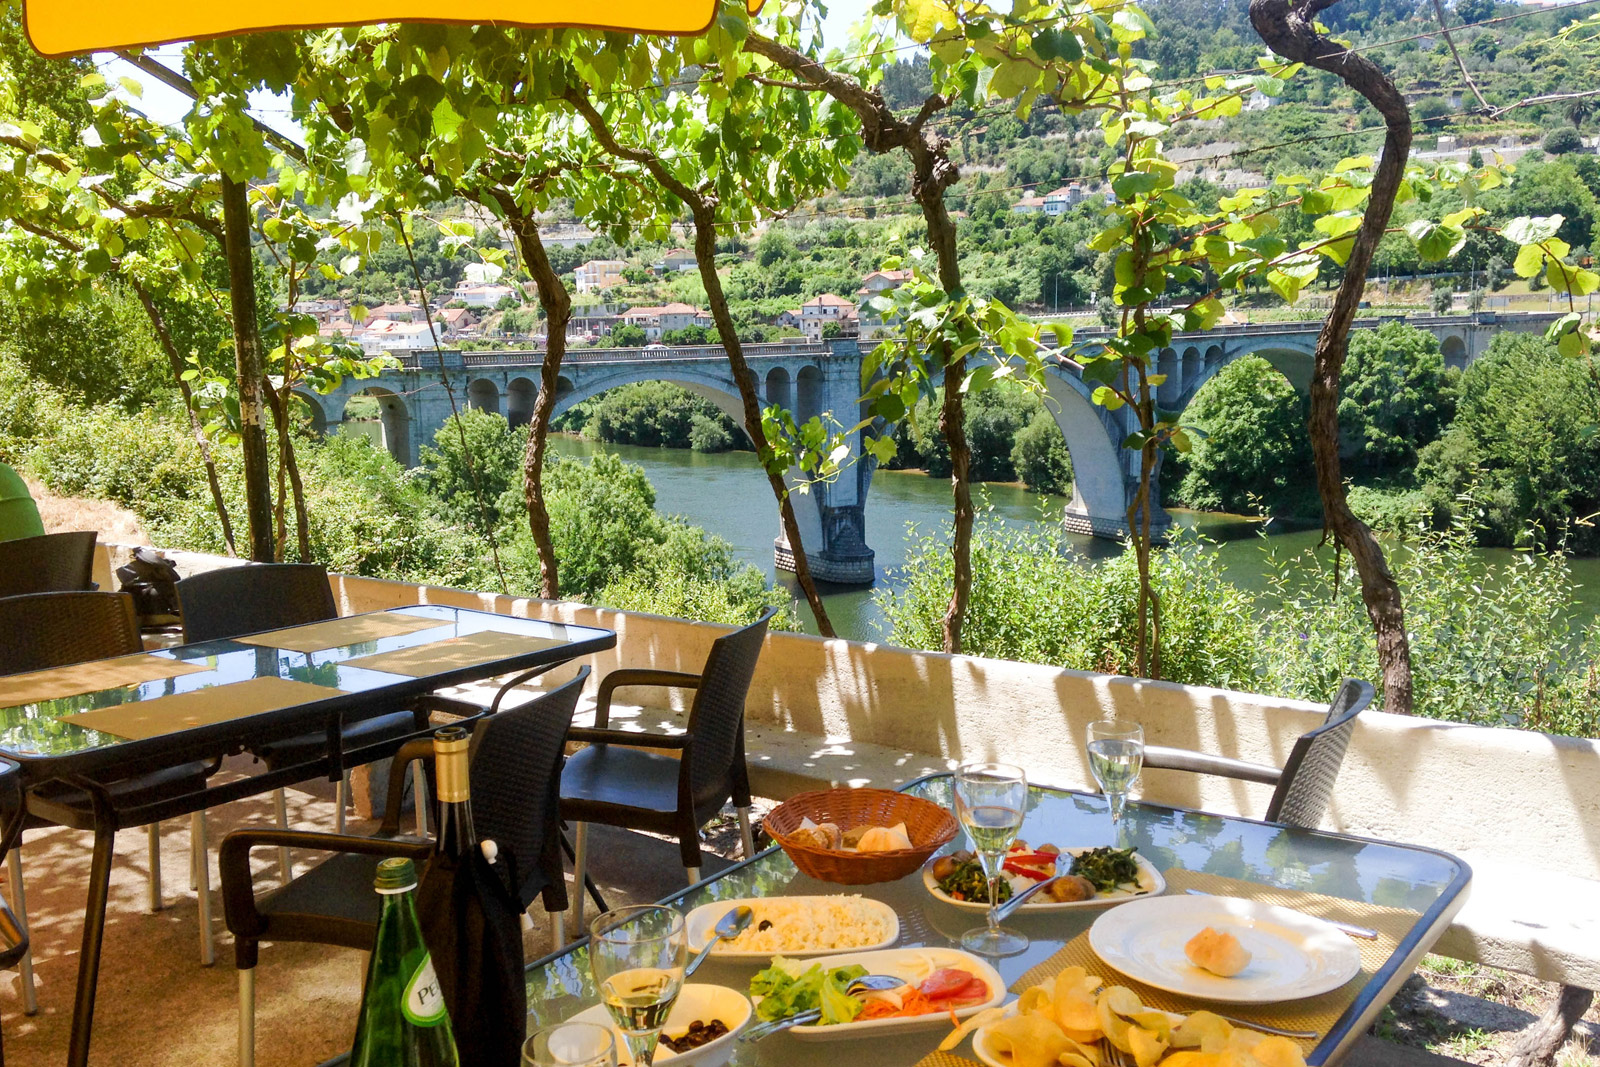 Lunch at a lovely outdoor restaurant we came upon while driving around the Douro River Valley